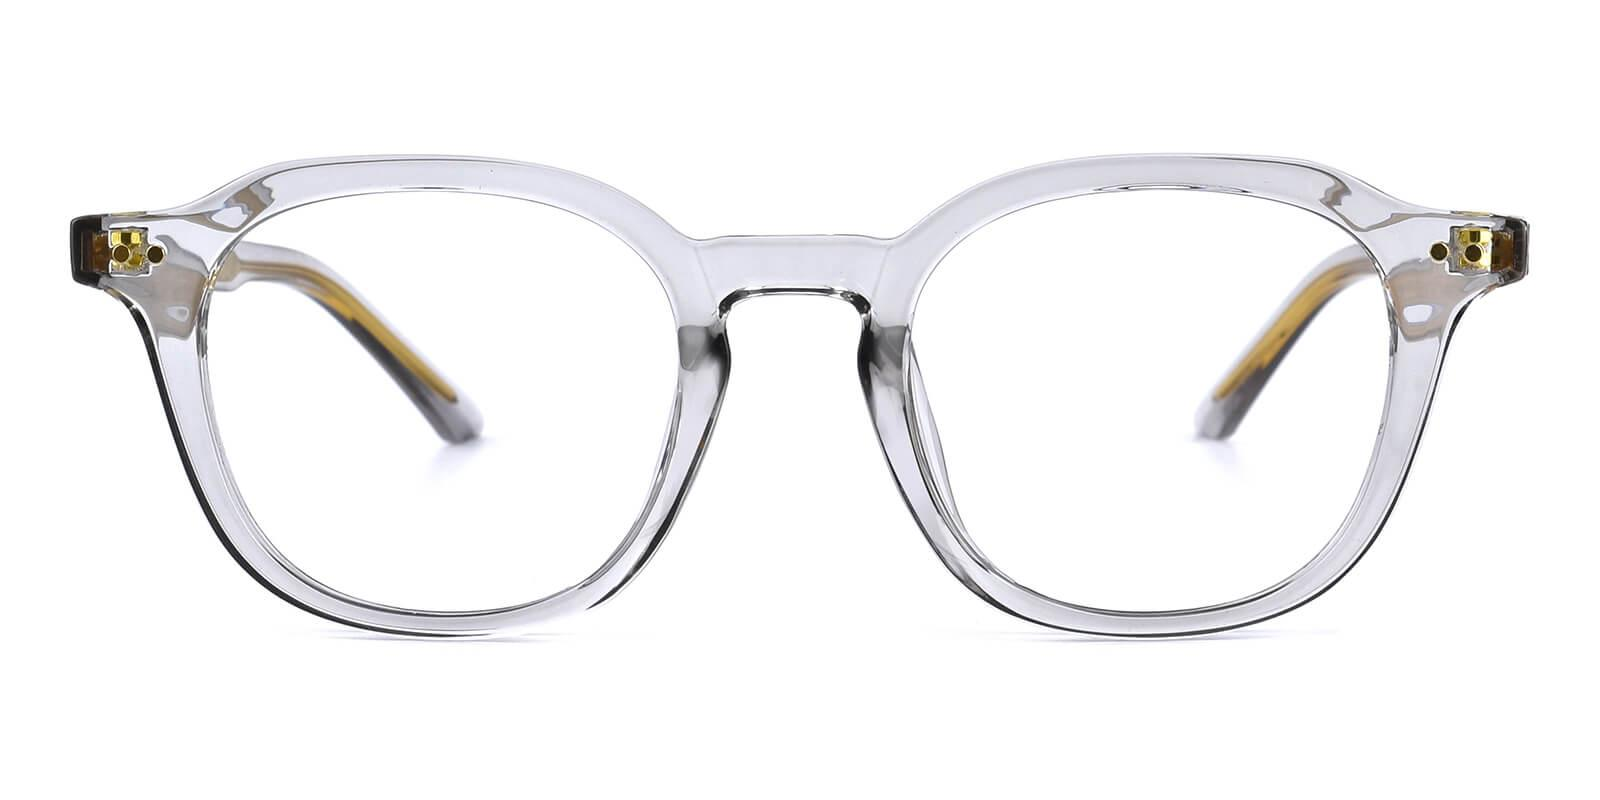 Dapper-Gray-Round-Acetate-Eyeglasses-additional2